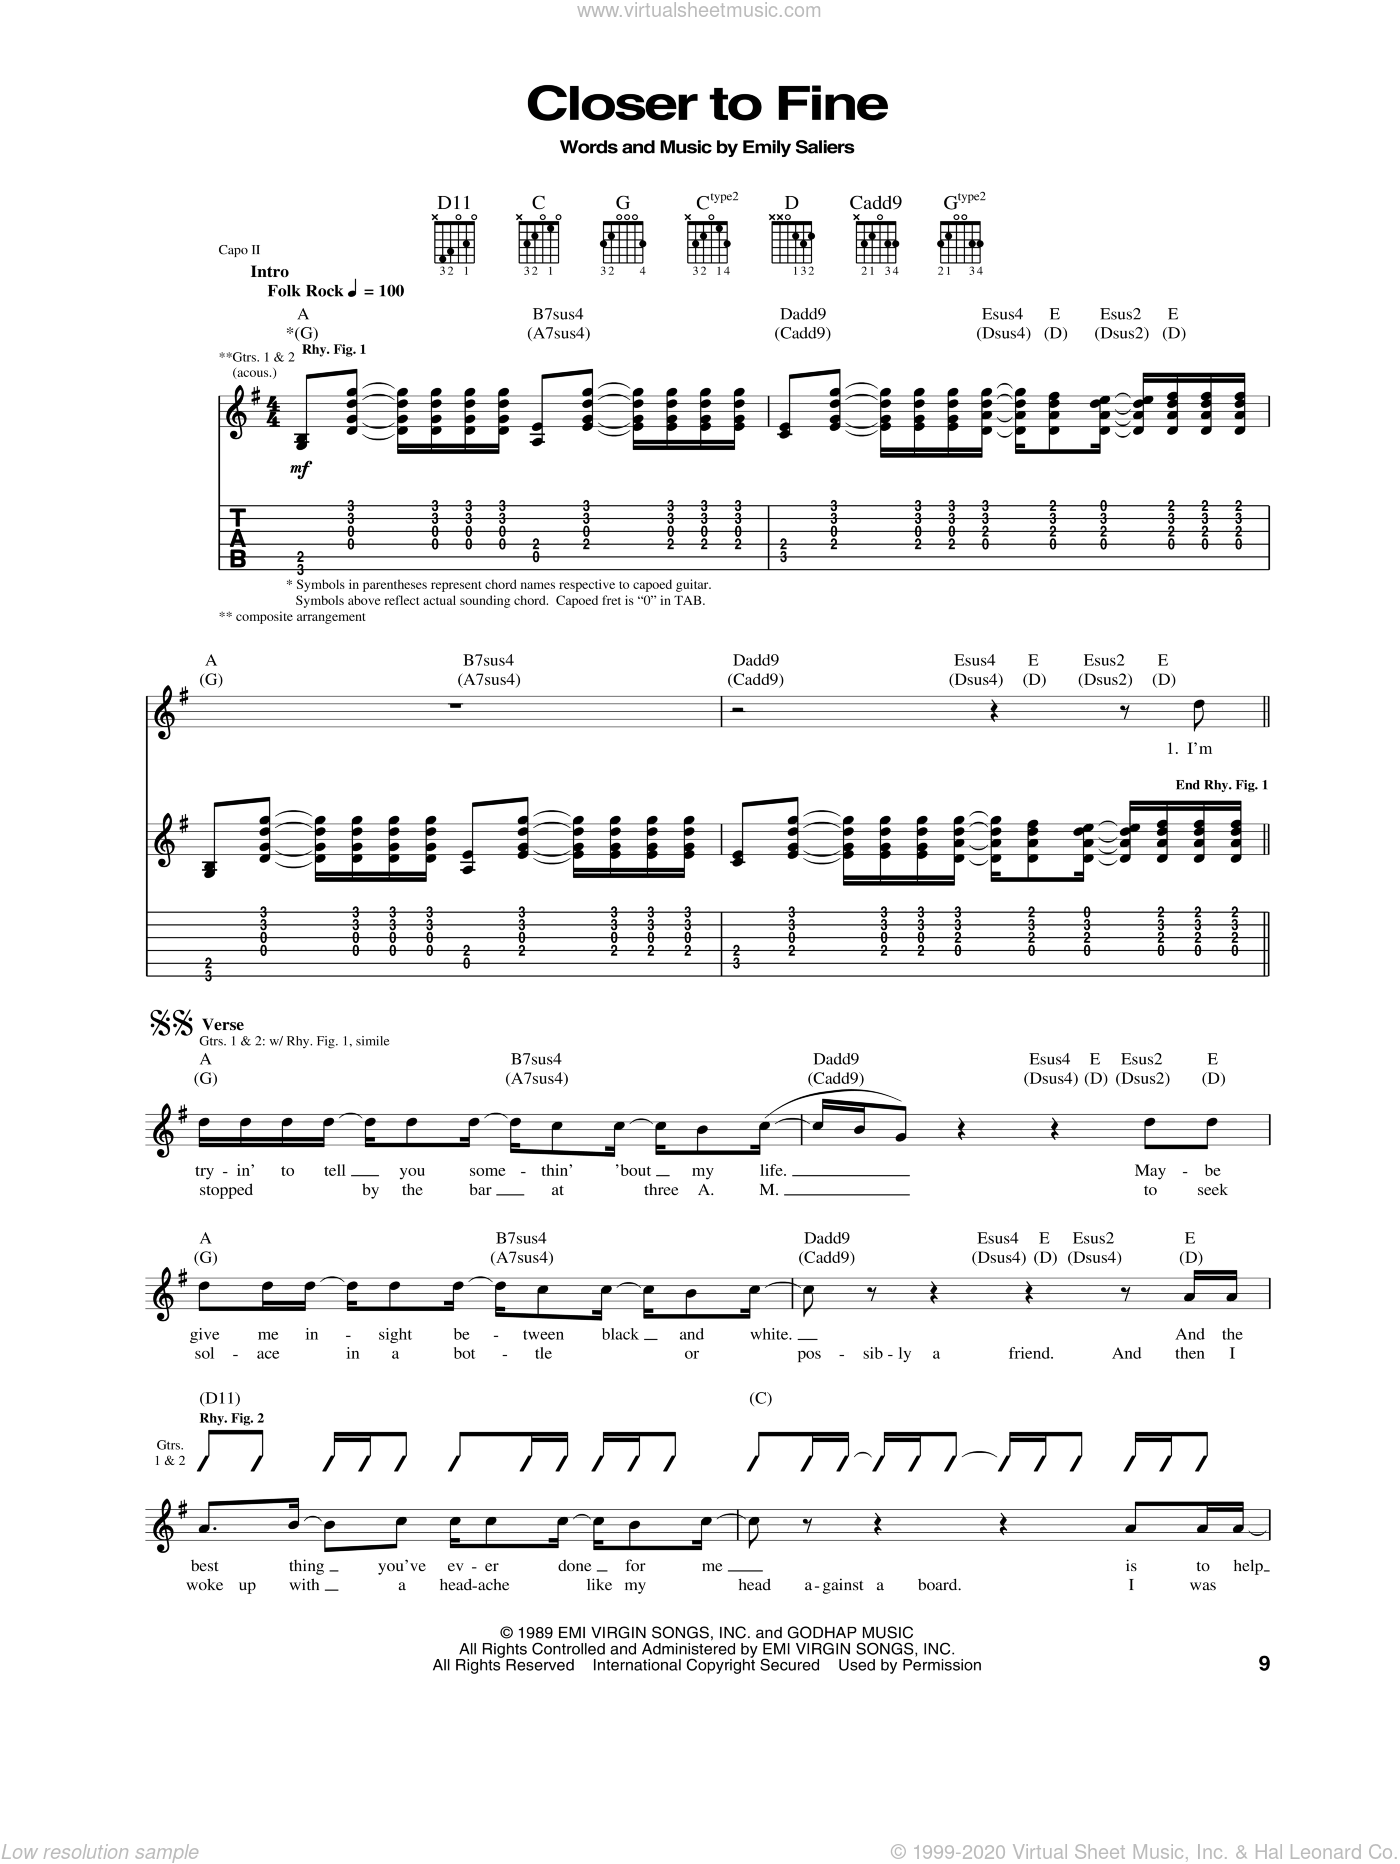 Closer To Fine sheet music for guitar (tablature) by Emily Saliers